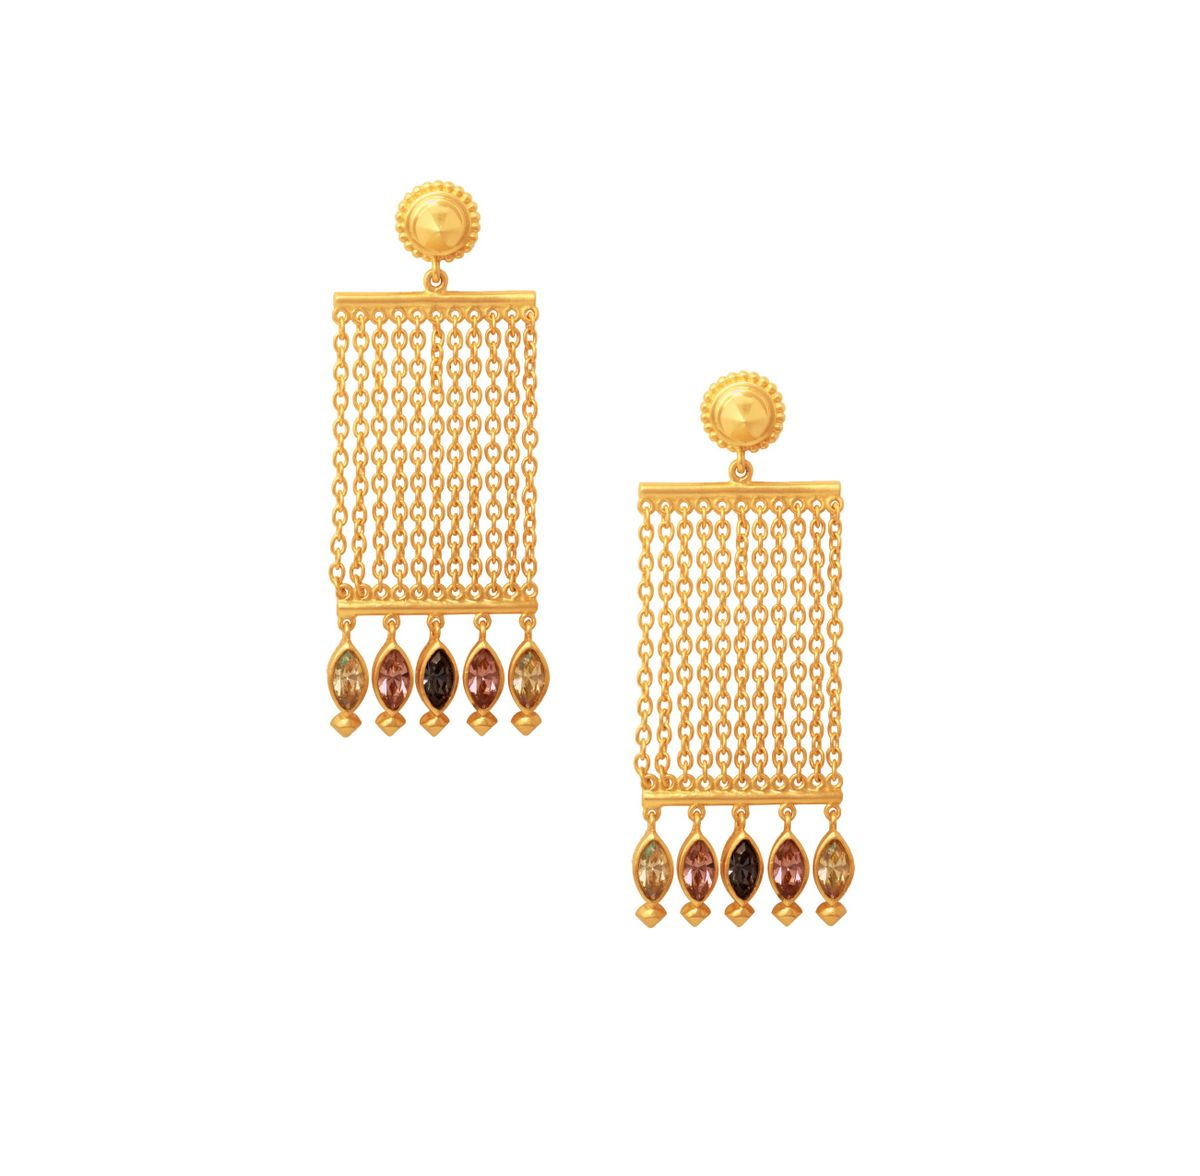 and jewellery best images chaand gold diamond baali amrapali earrings pinterest nithyasridhar by on